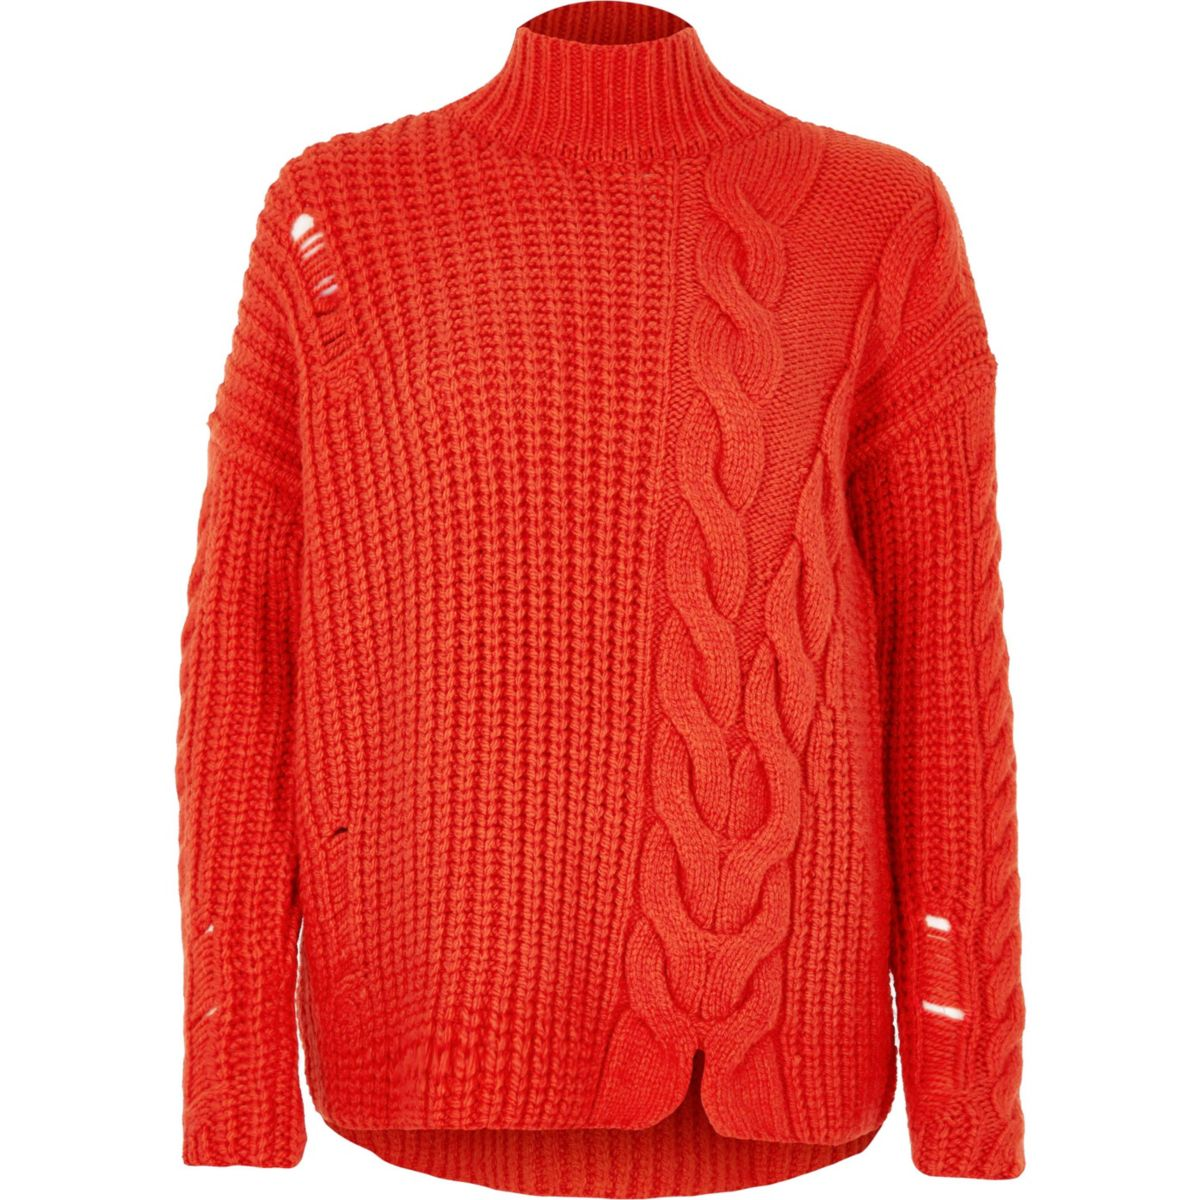 Bright red cable knit high neck sweater - Sweaters - Knitwear - women